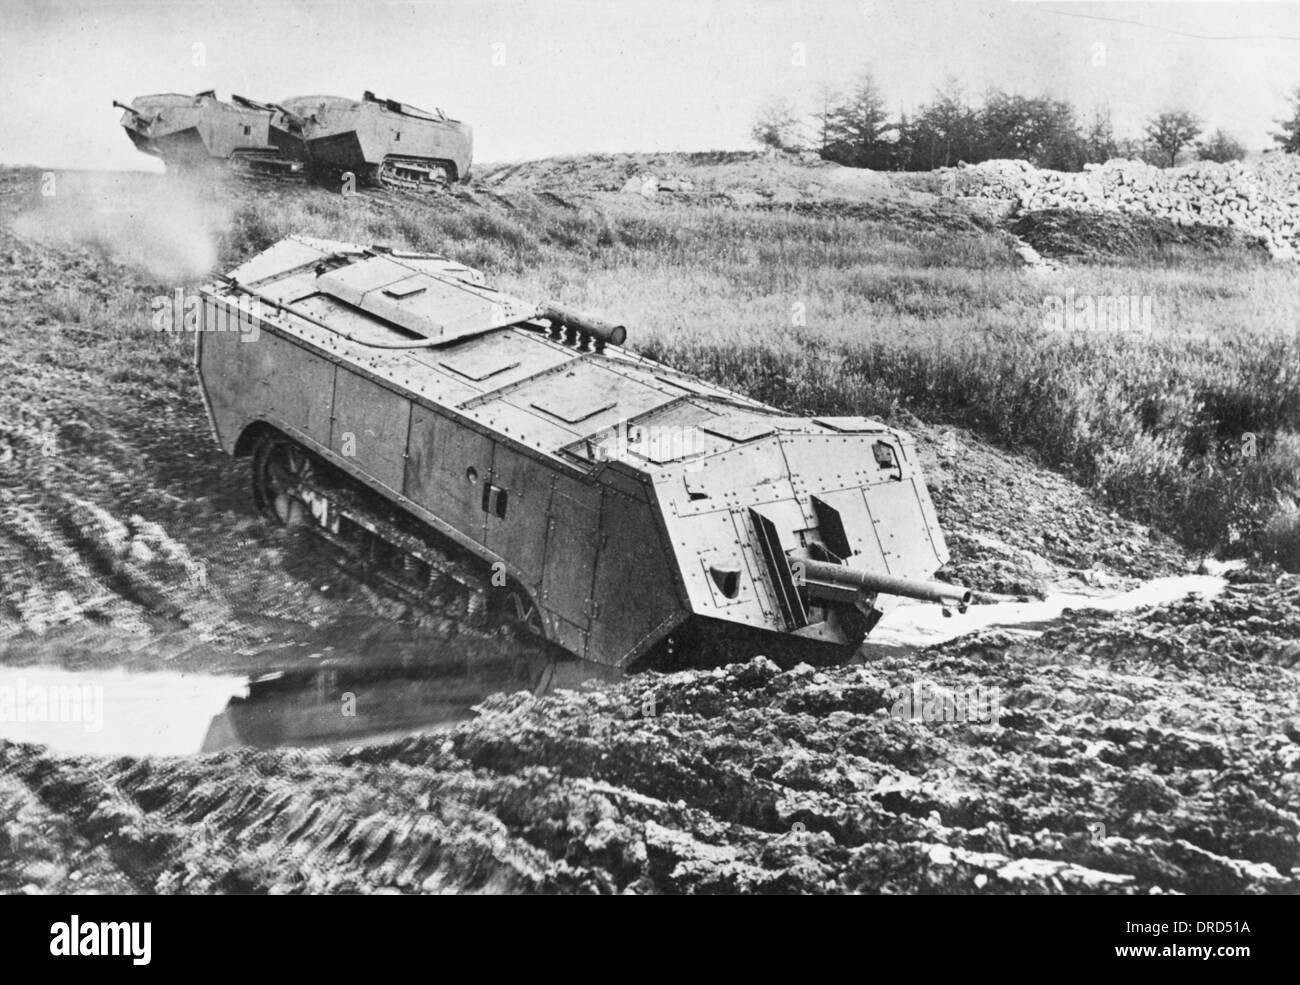 French tank WWI Stock Photo, Royalty Free Image: 66057526 ...